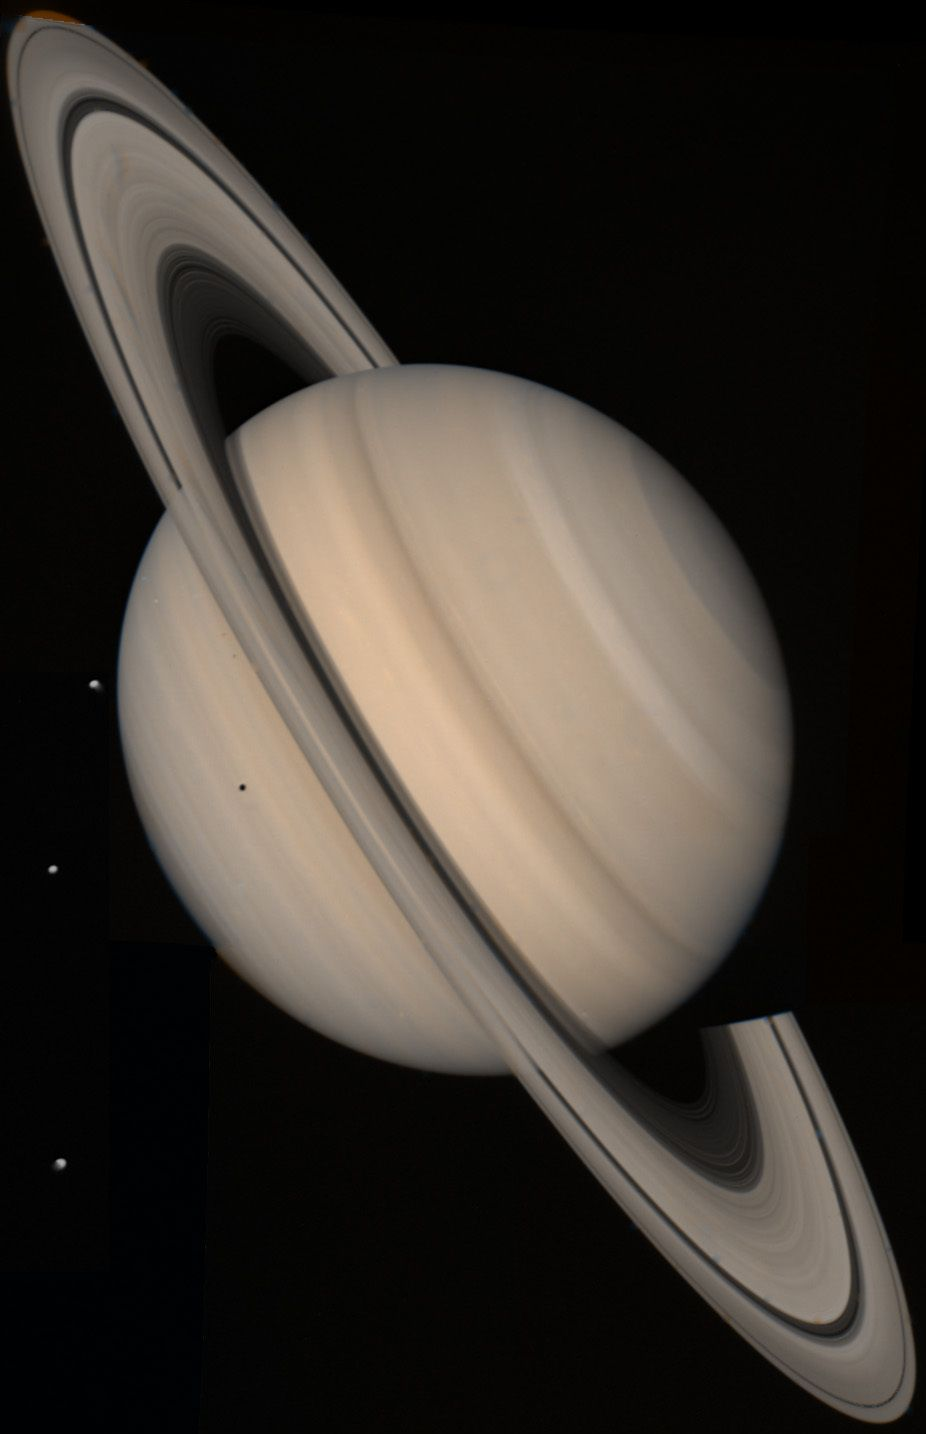 Real Pictures Of Saturn The Planet page 3  Pics about space  planets  Planets Saturn